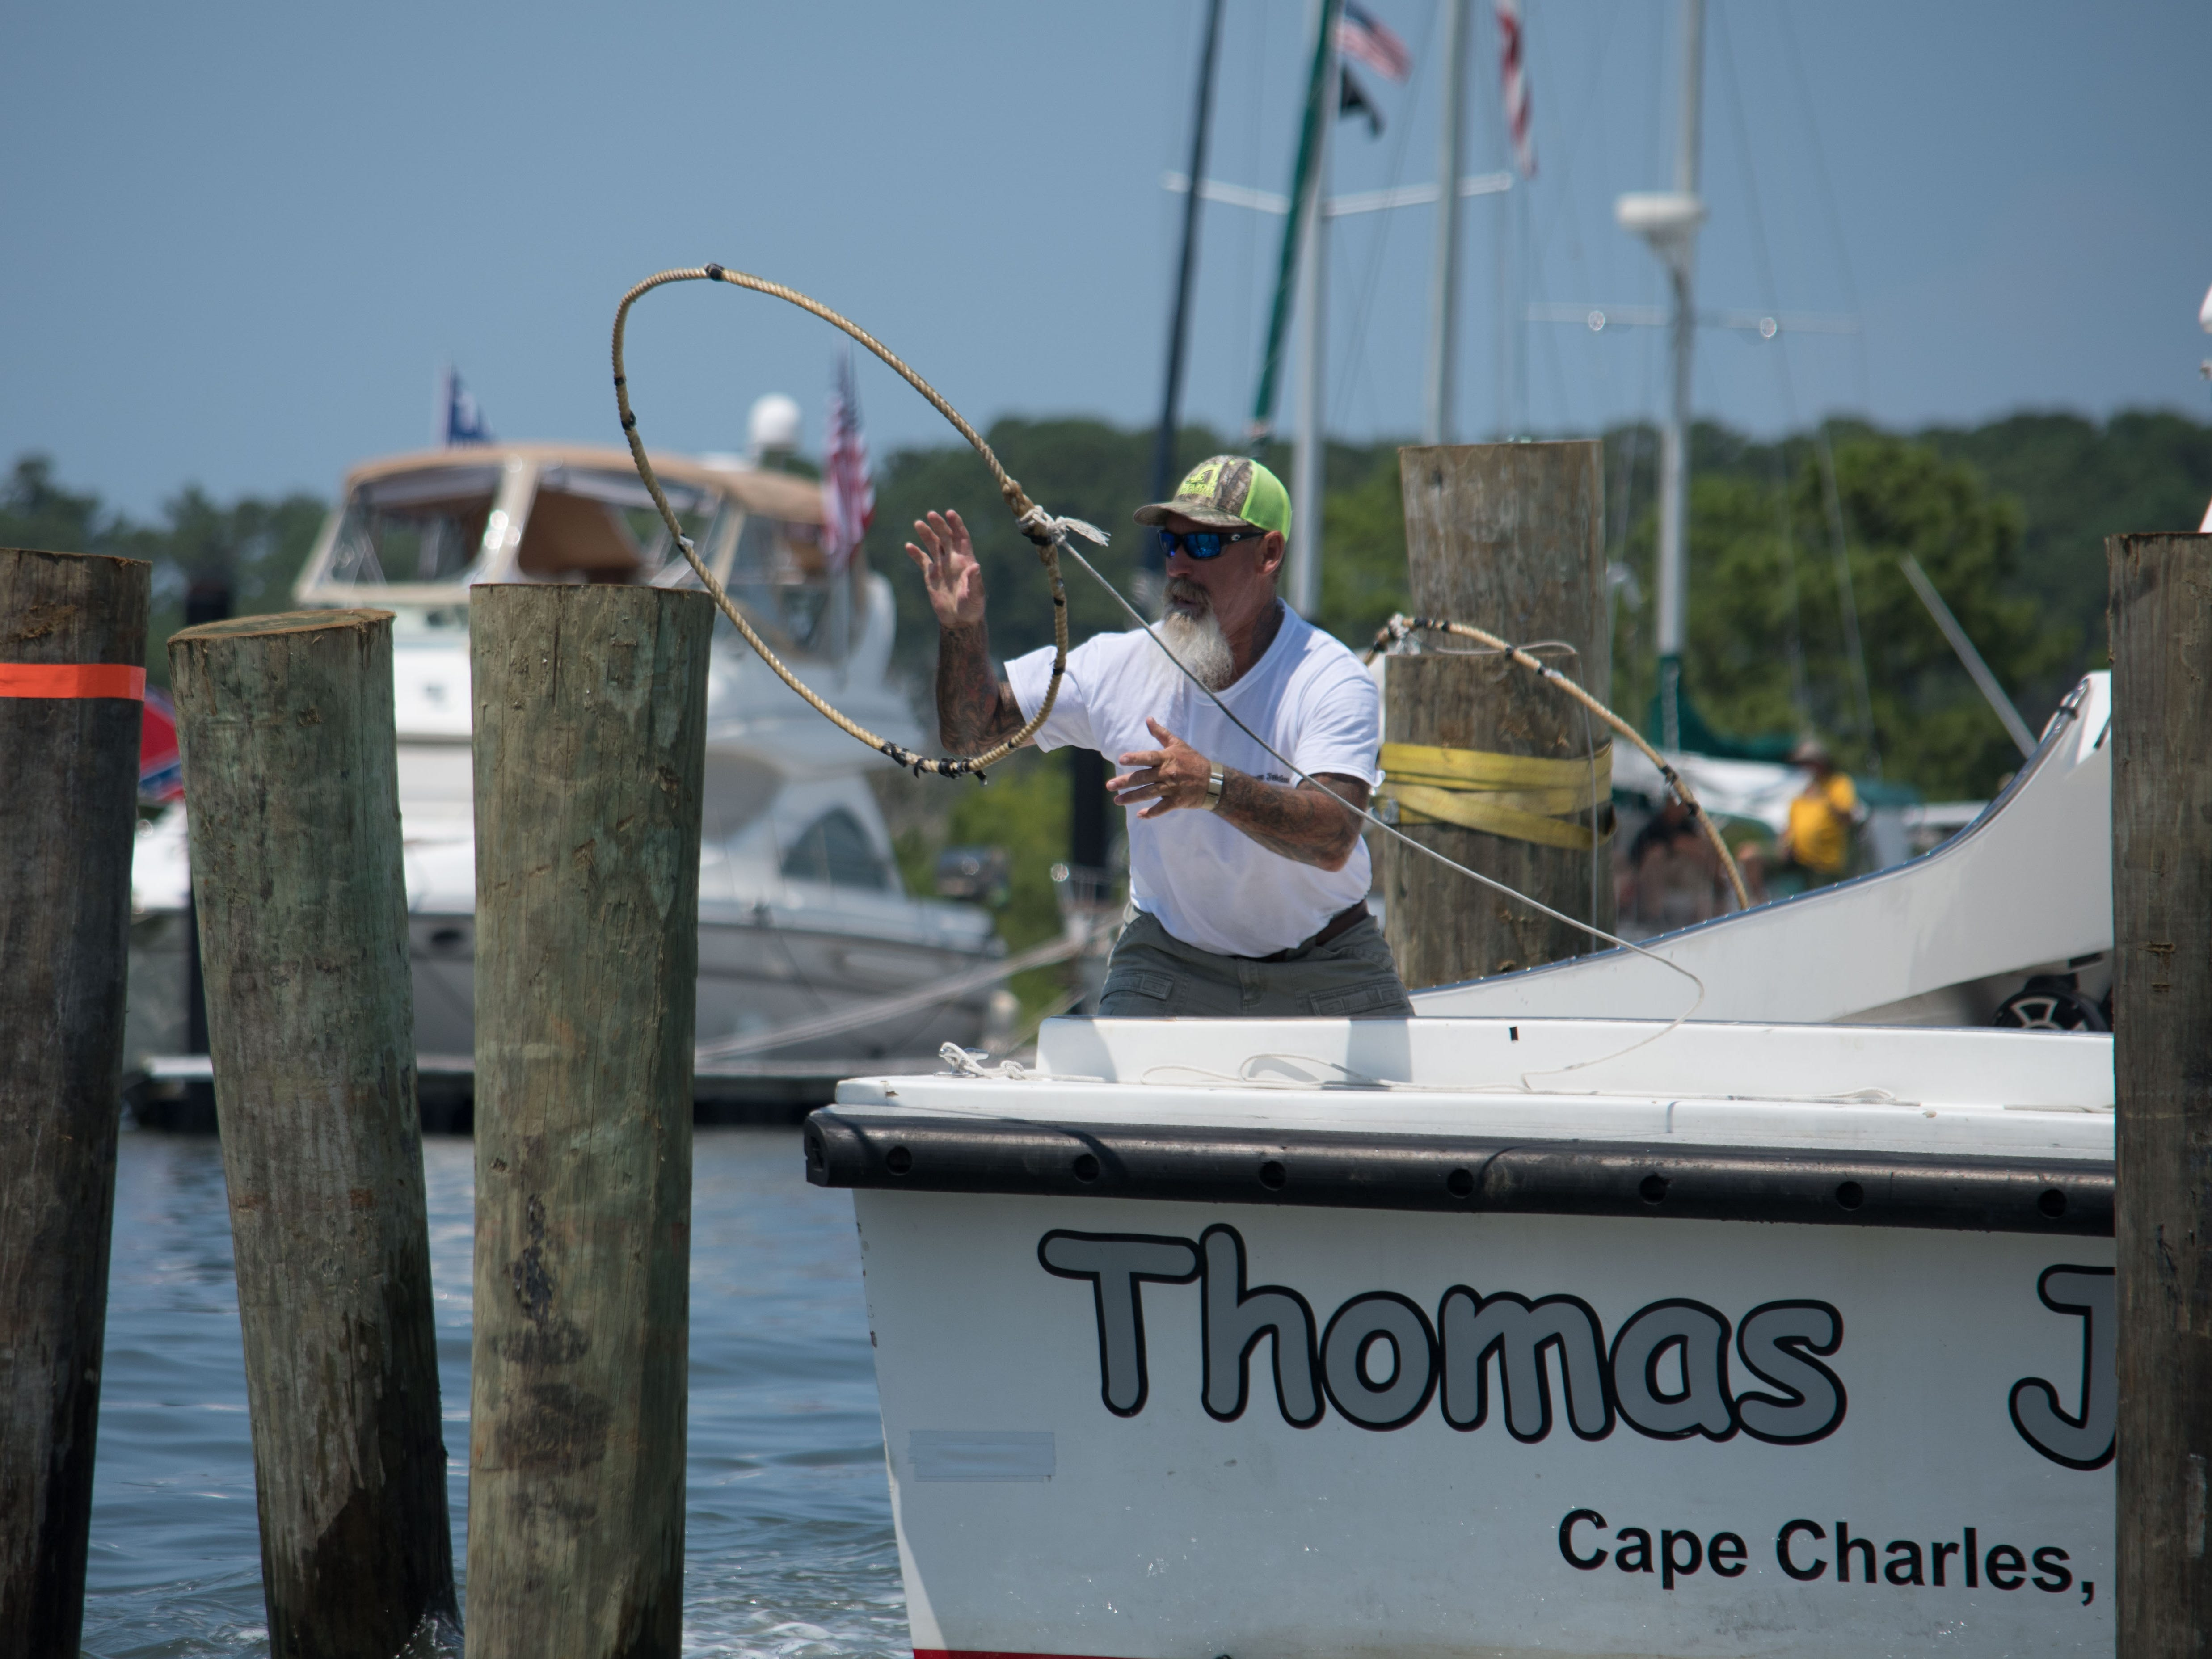 Kenny Heath, champion of the 2018 Boat Docking Contest, finishes docking the Thomas Jaiden with a time of 29 seconds in Cape Charles.